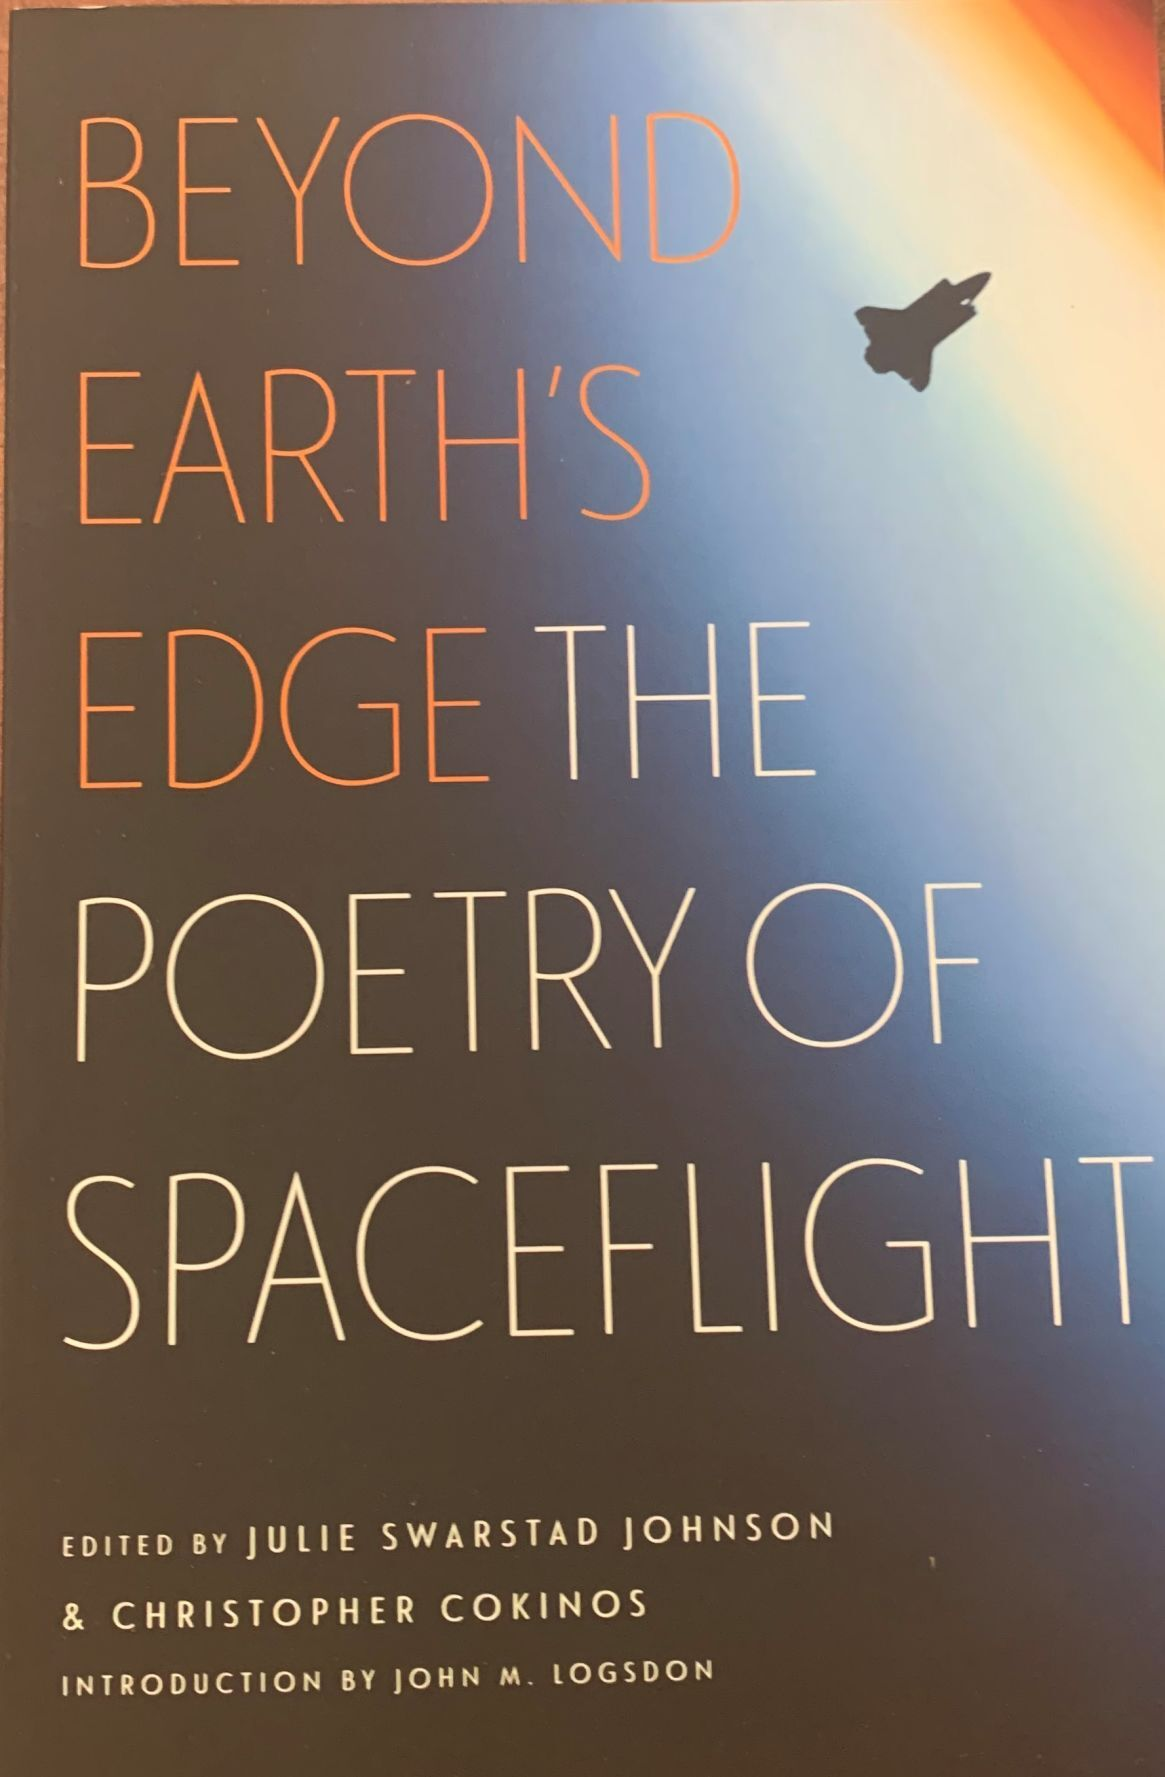 Beyond Earth's Edge: The Poetry of Spaceflight